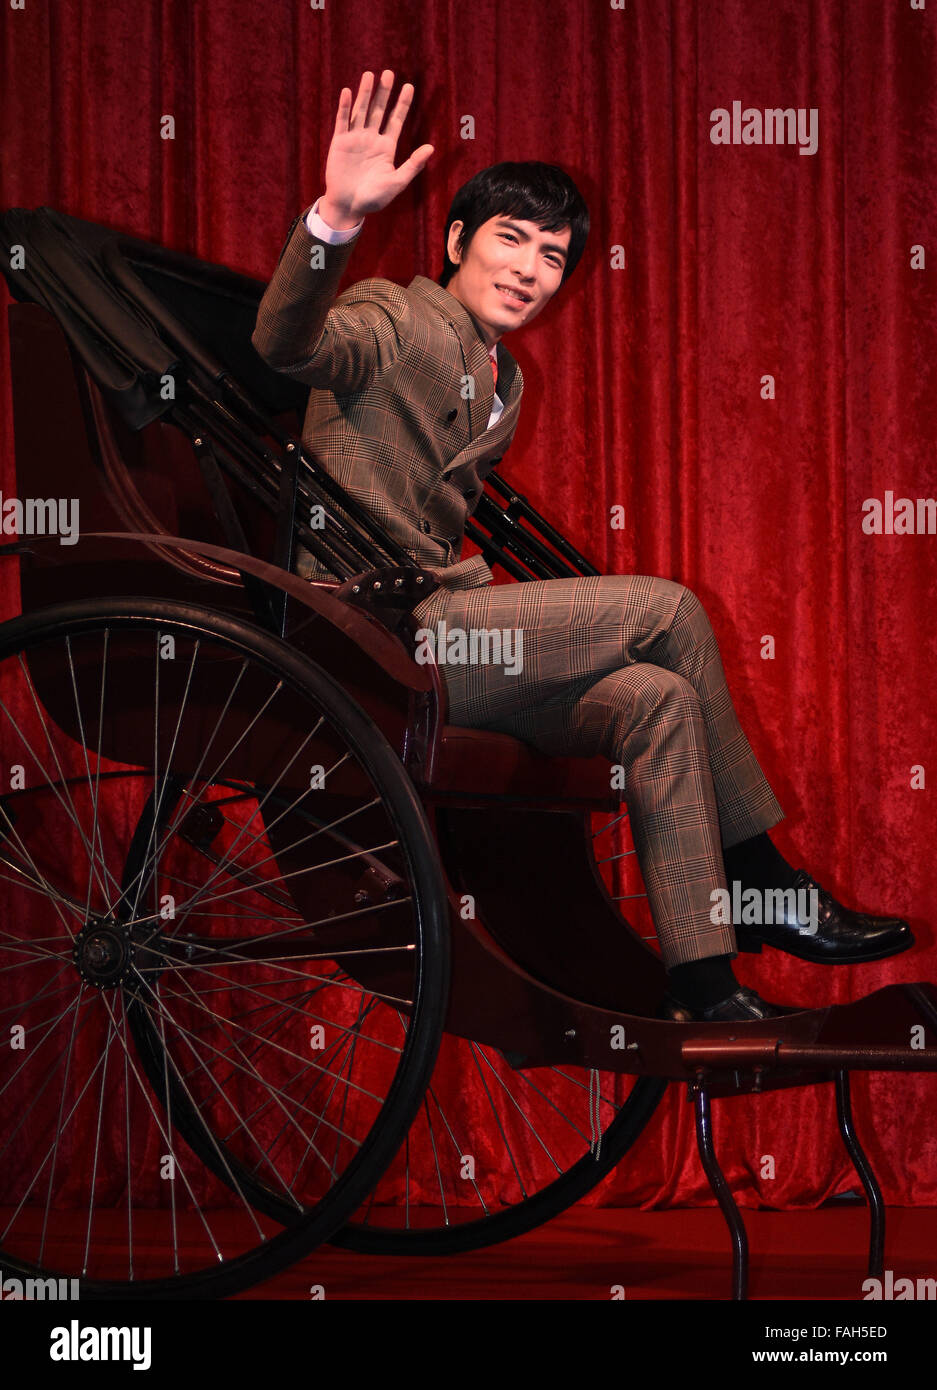 (151230) -- TAIPEI, Dec. 30, 2015 (Xinhua) -- Singer Jam Hsiao poses during a press conference of his new album - Stock Image